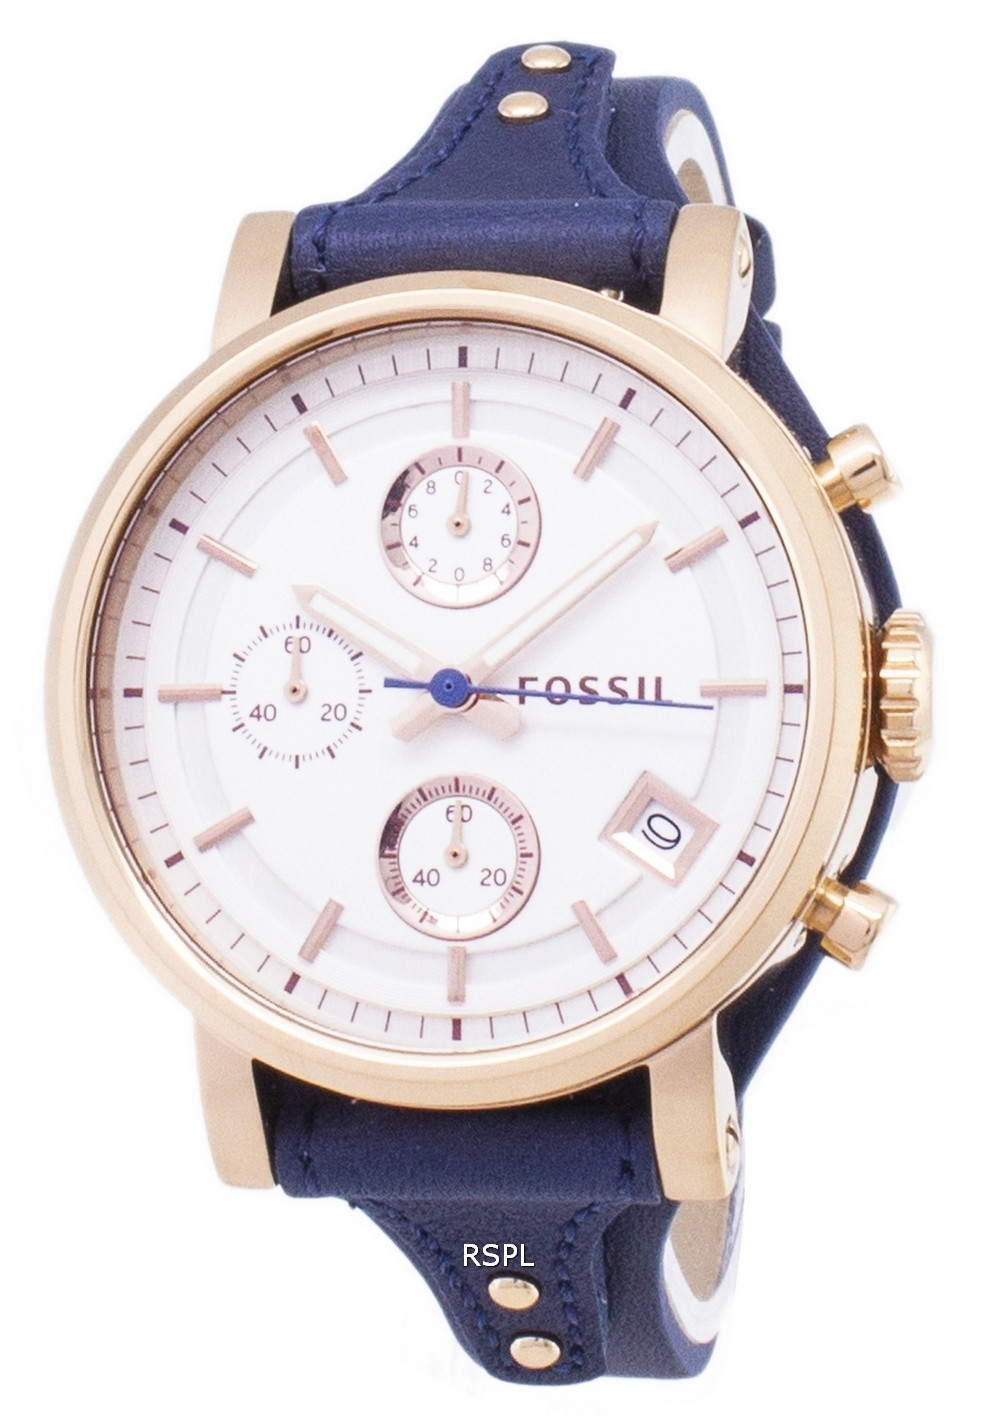 de38c90a7c8f Details about Fossil Original Boyfriend Quartz Chronograph Blue Leather  ES3838 Womens Watch